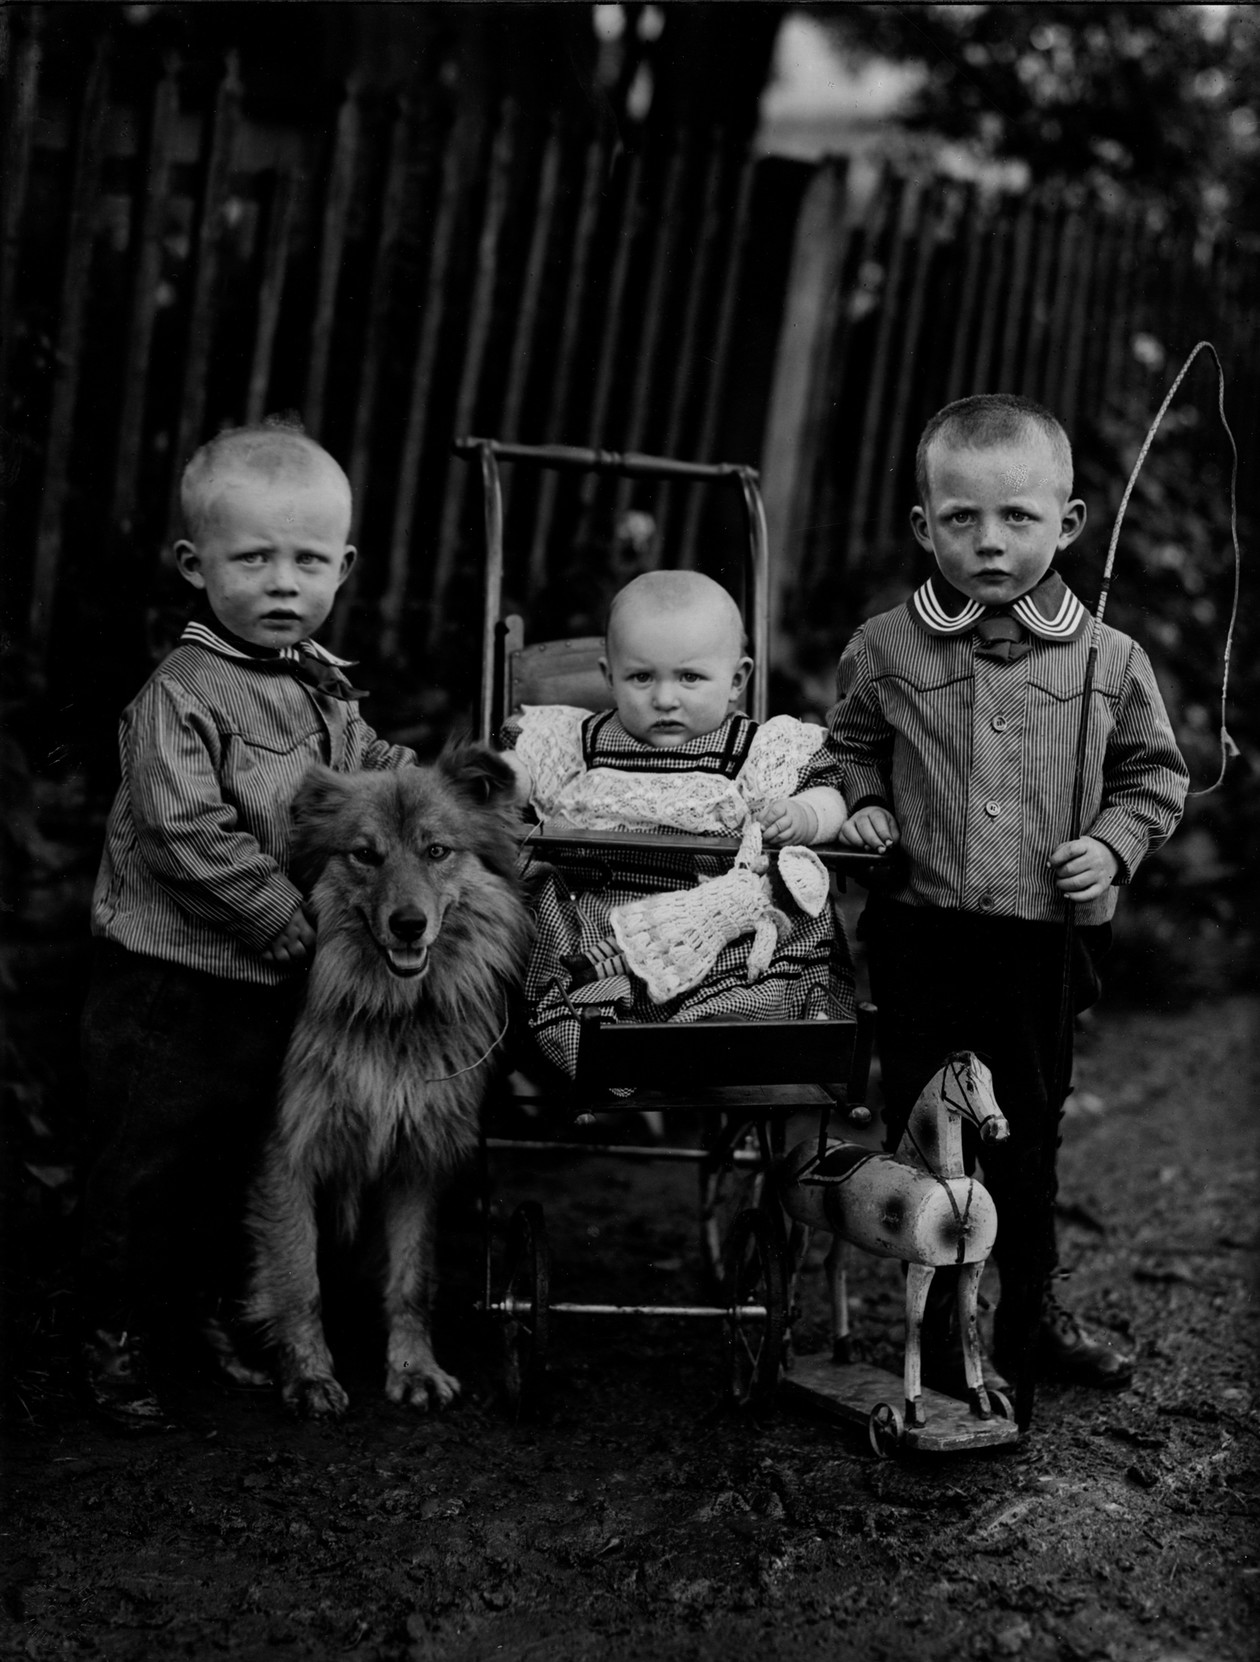 Farmer's Children, Westerwald (c. 1912) by August Sander